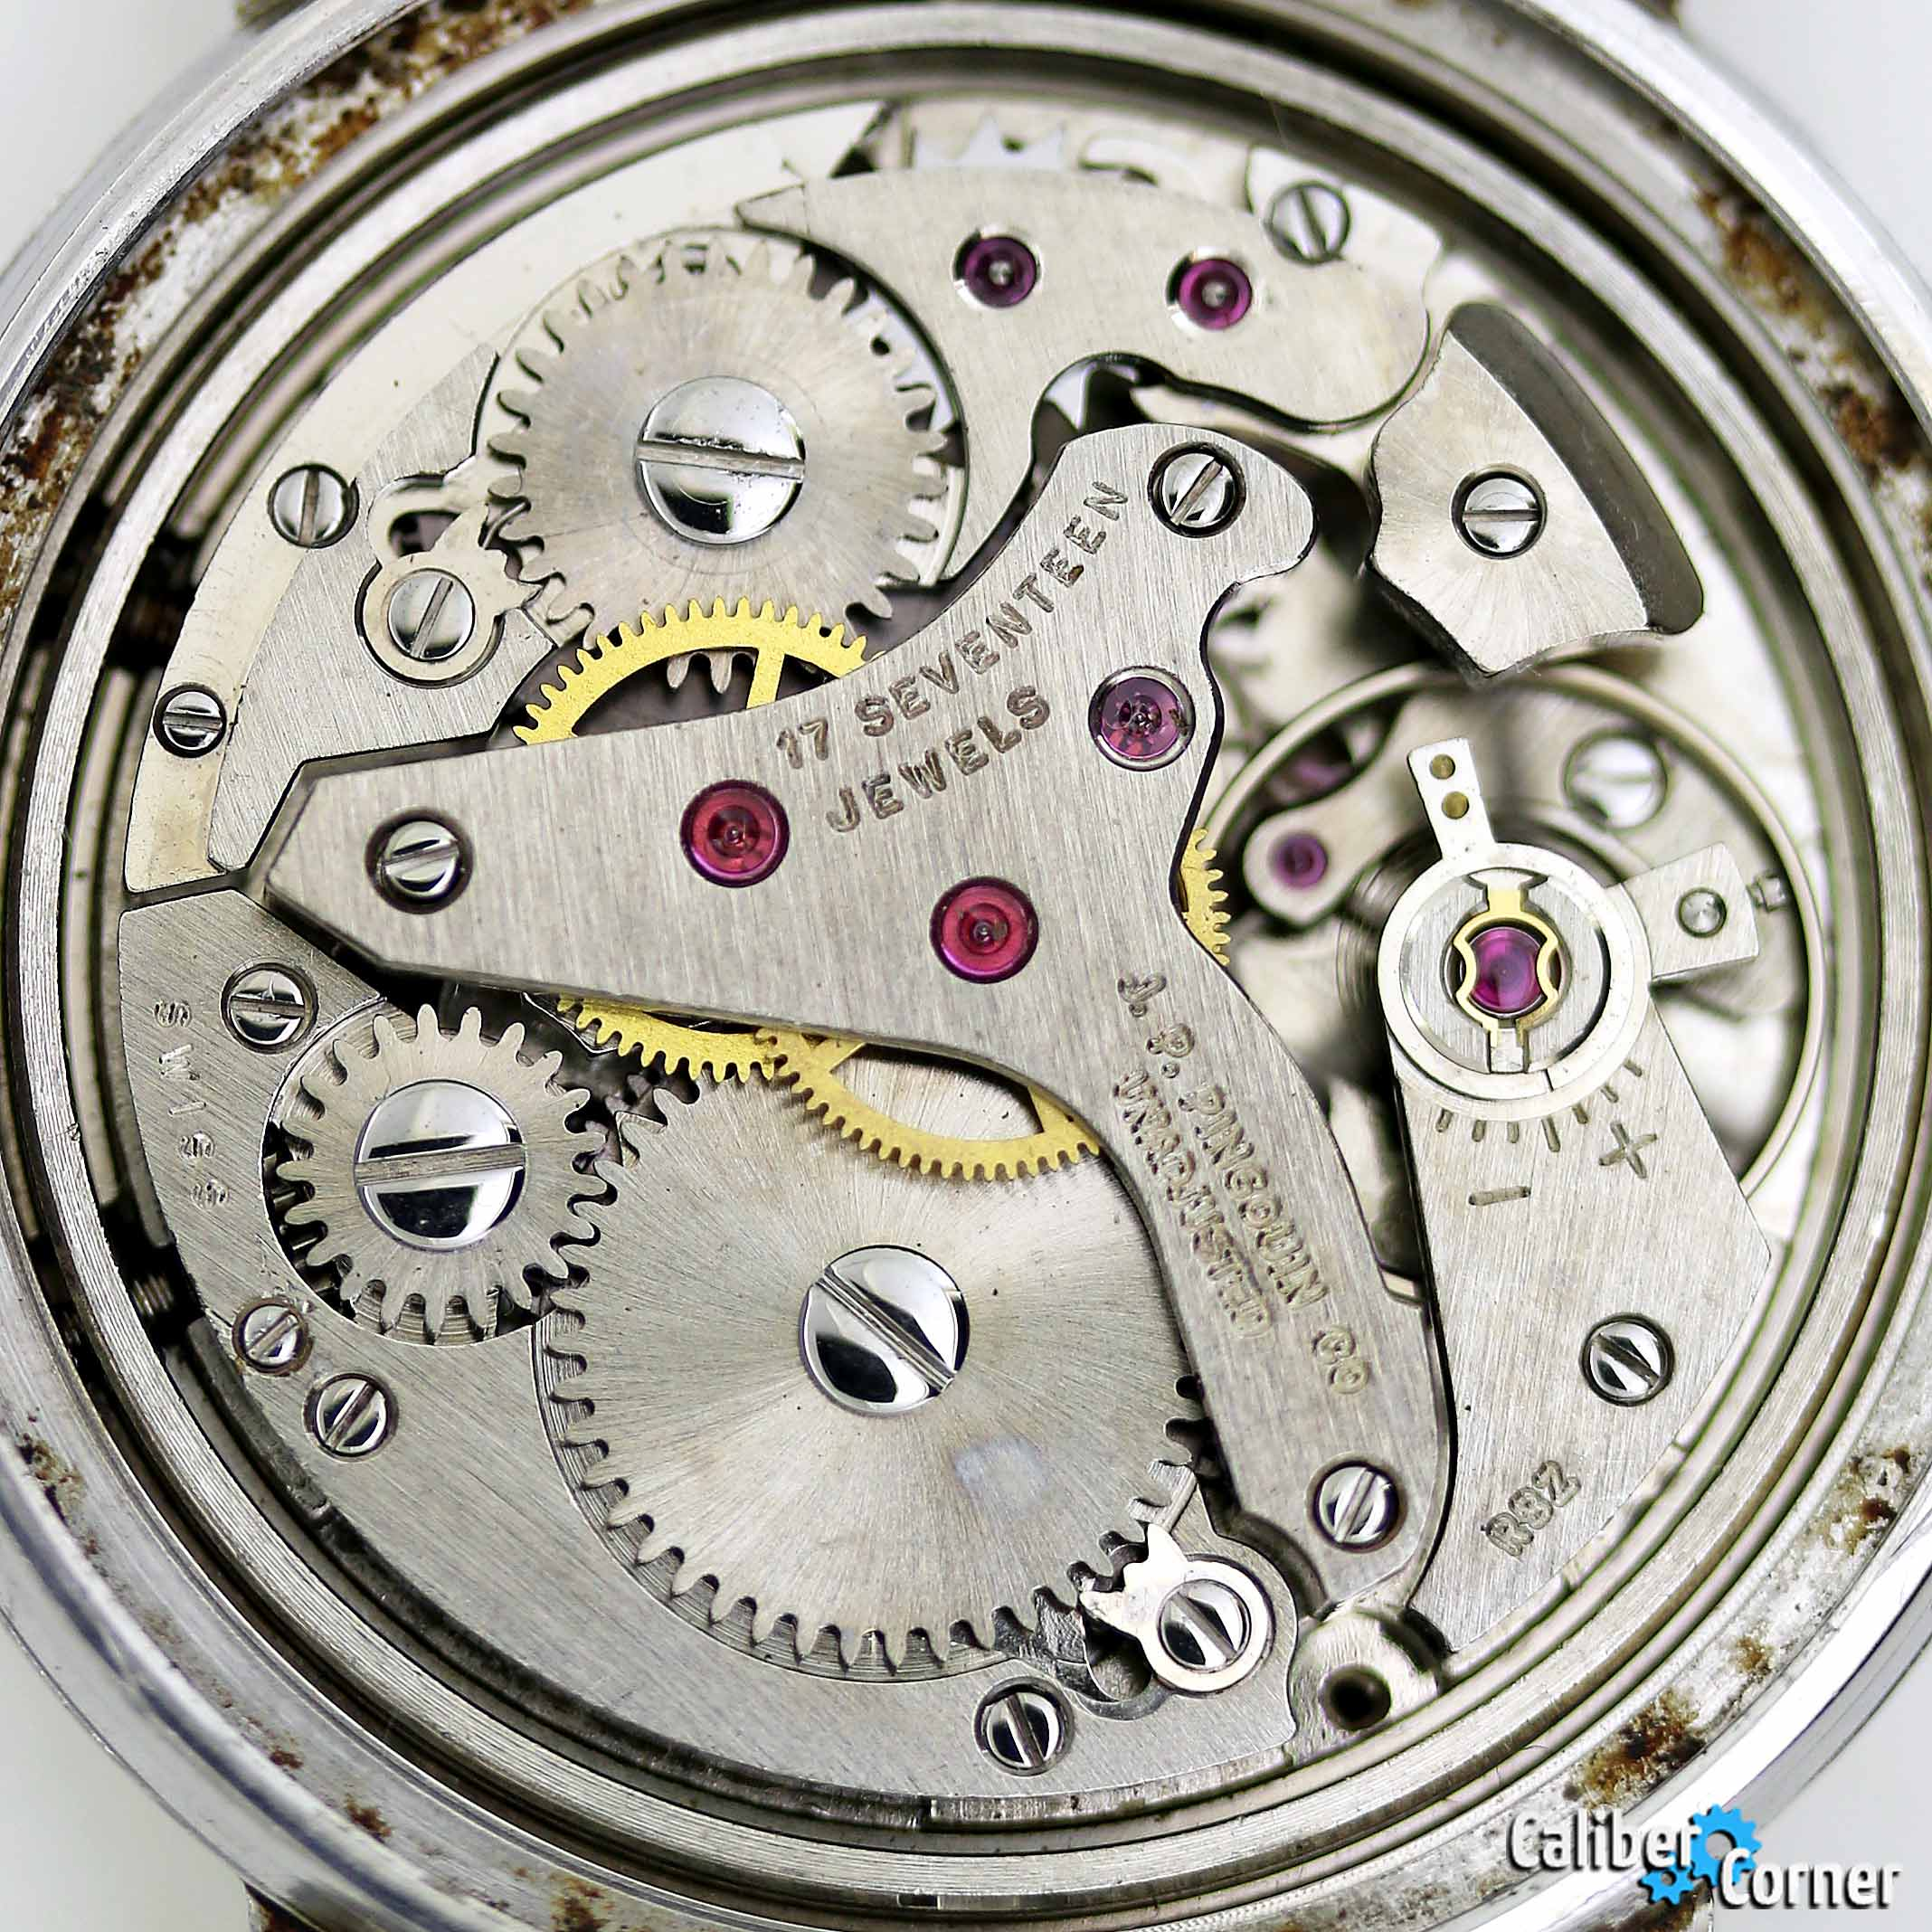 J.P. Pinguoin A. Schild caliber AS 1475 alarm watch